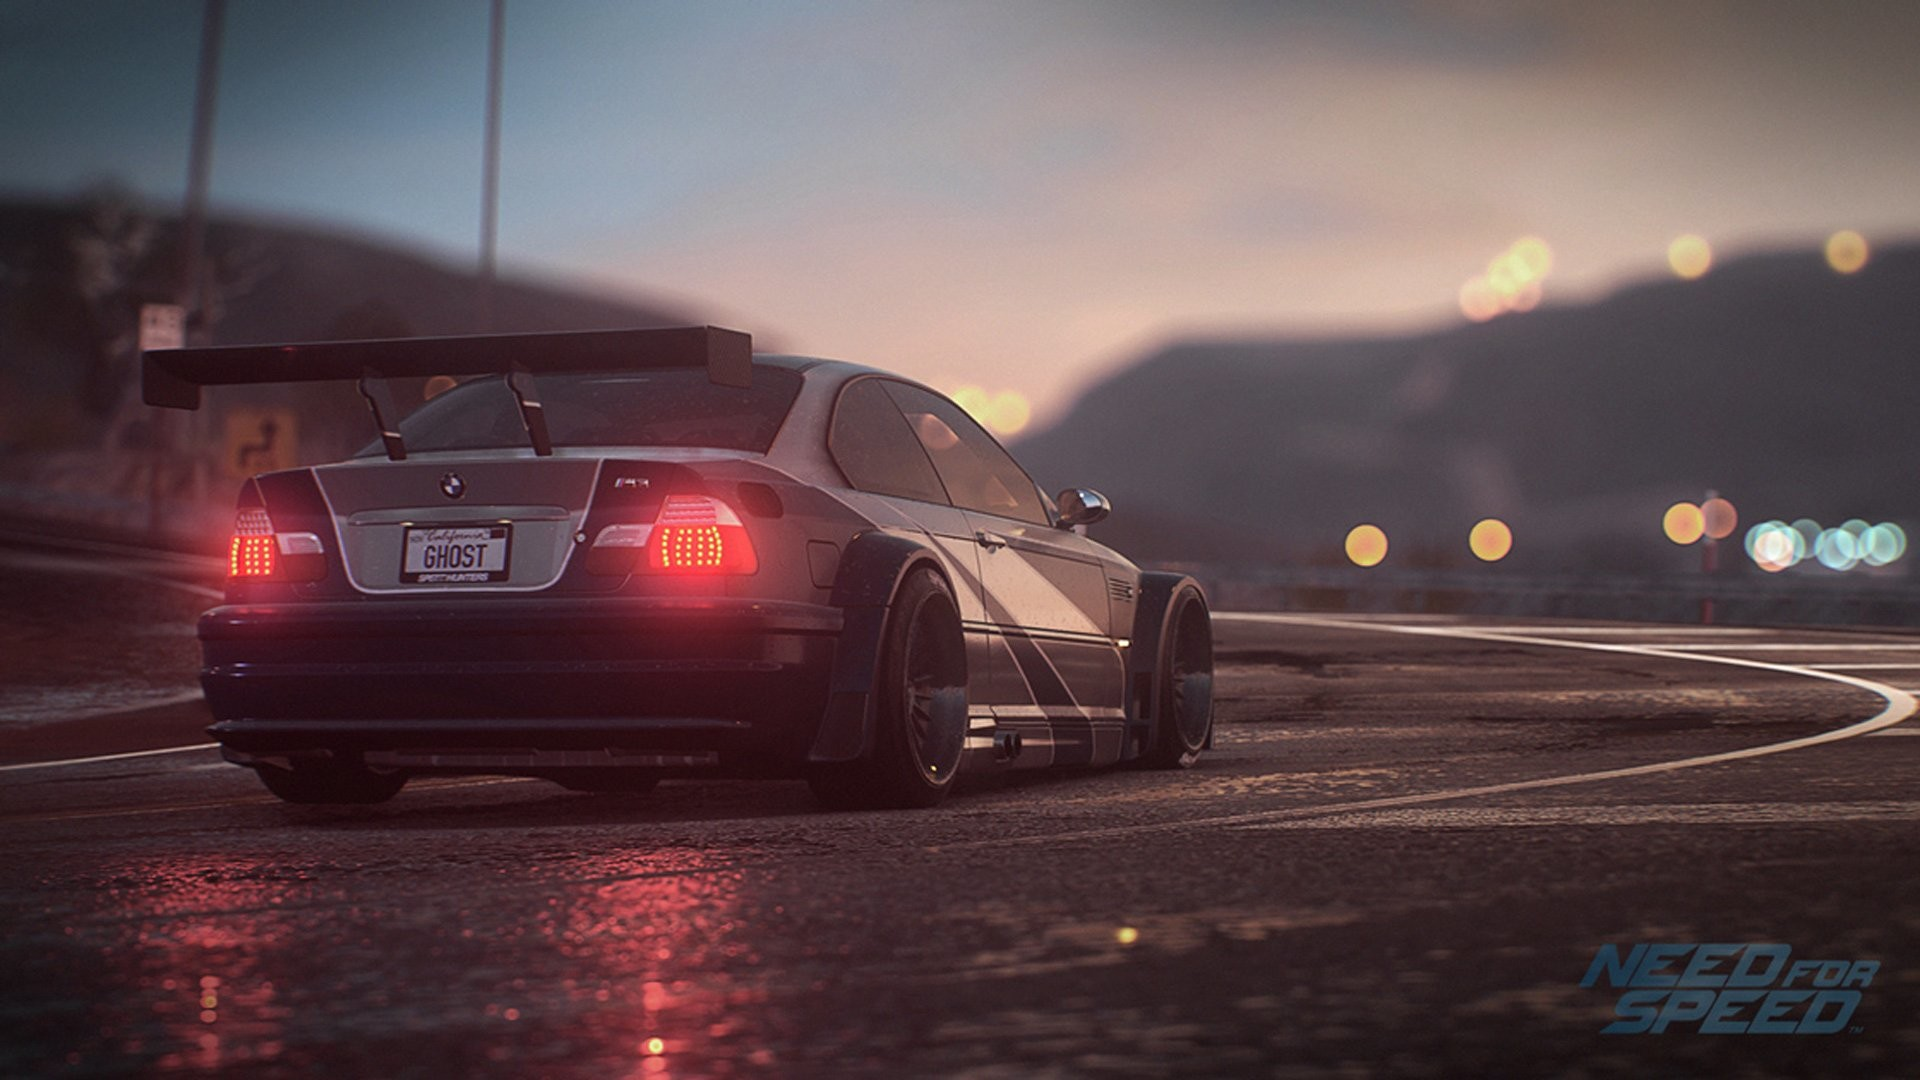 1920x1080 Video Game - Need for Speed (2015) Need For Speed BMW BMW M3 Wallpaper